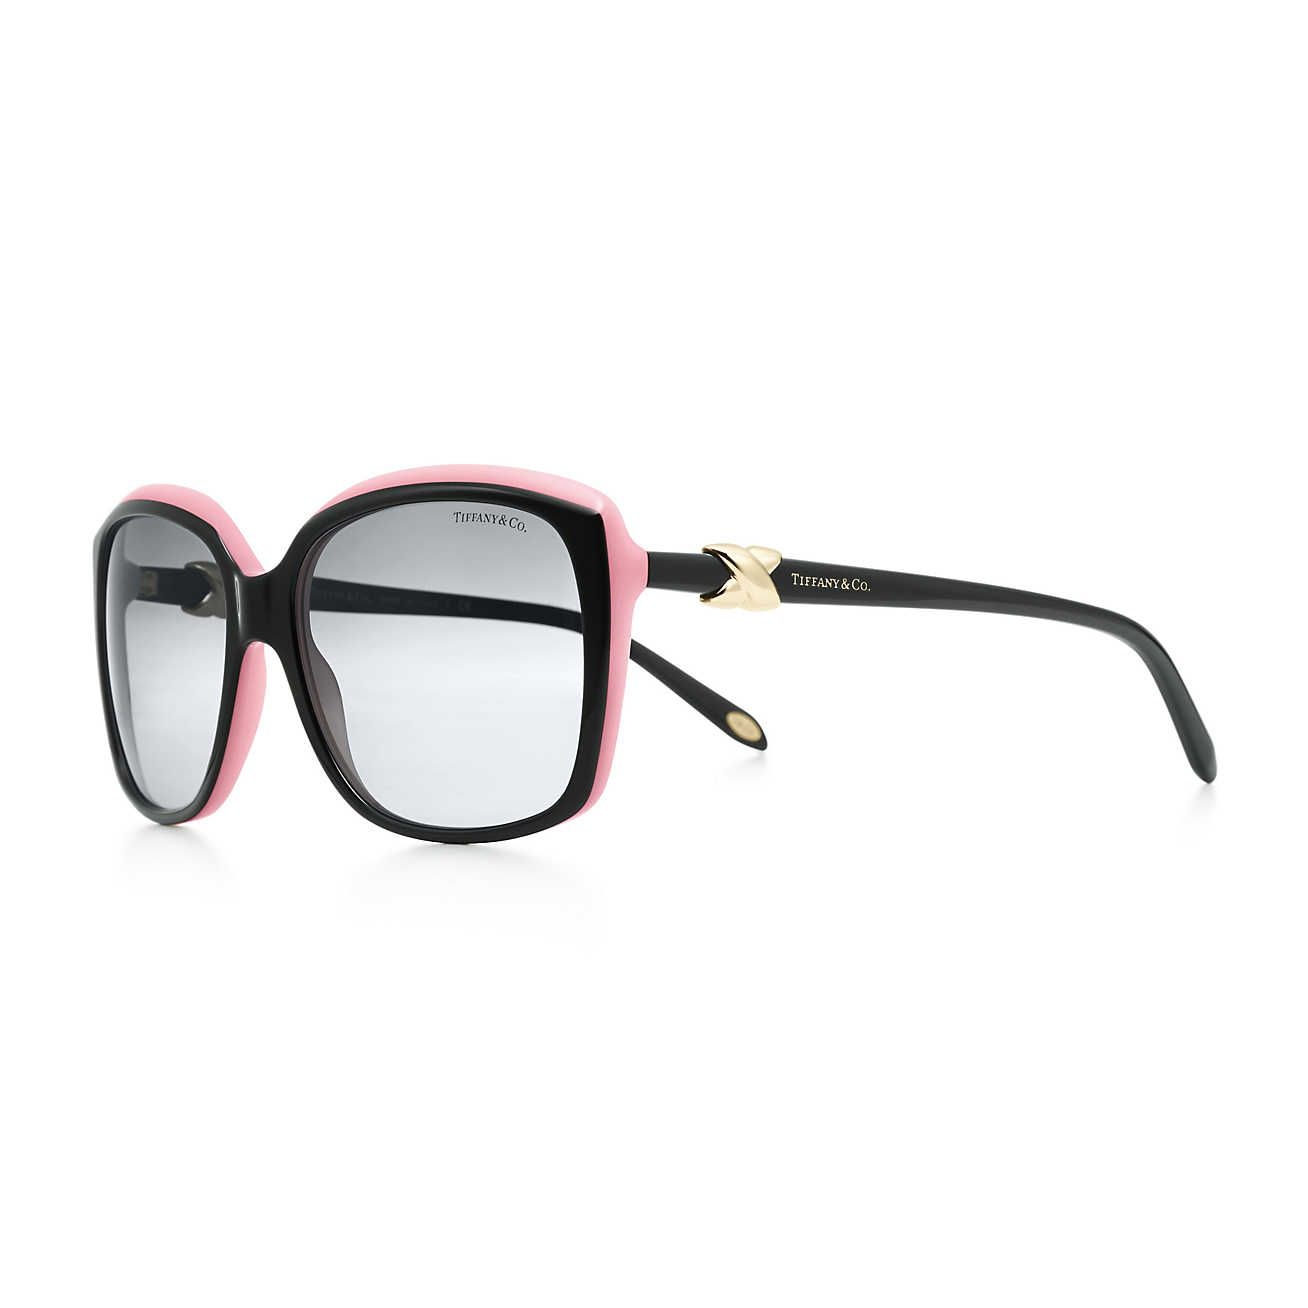 9f615084e3b4 Tiffany Signature™ Square Sunglasses